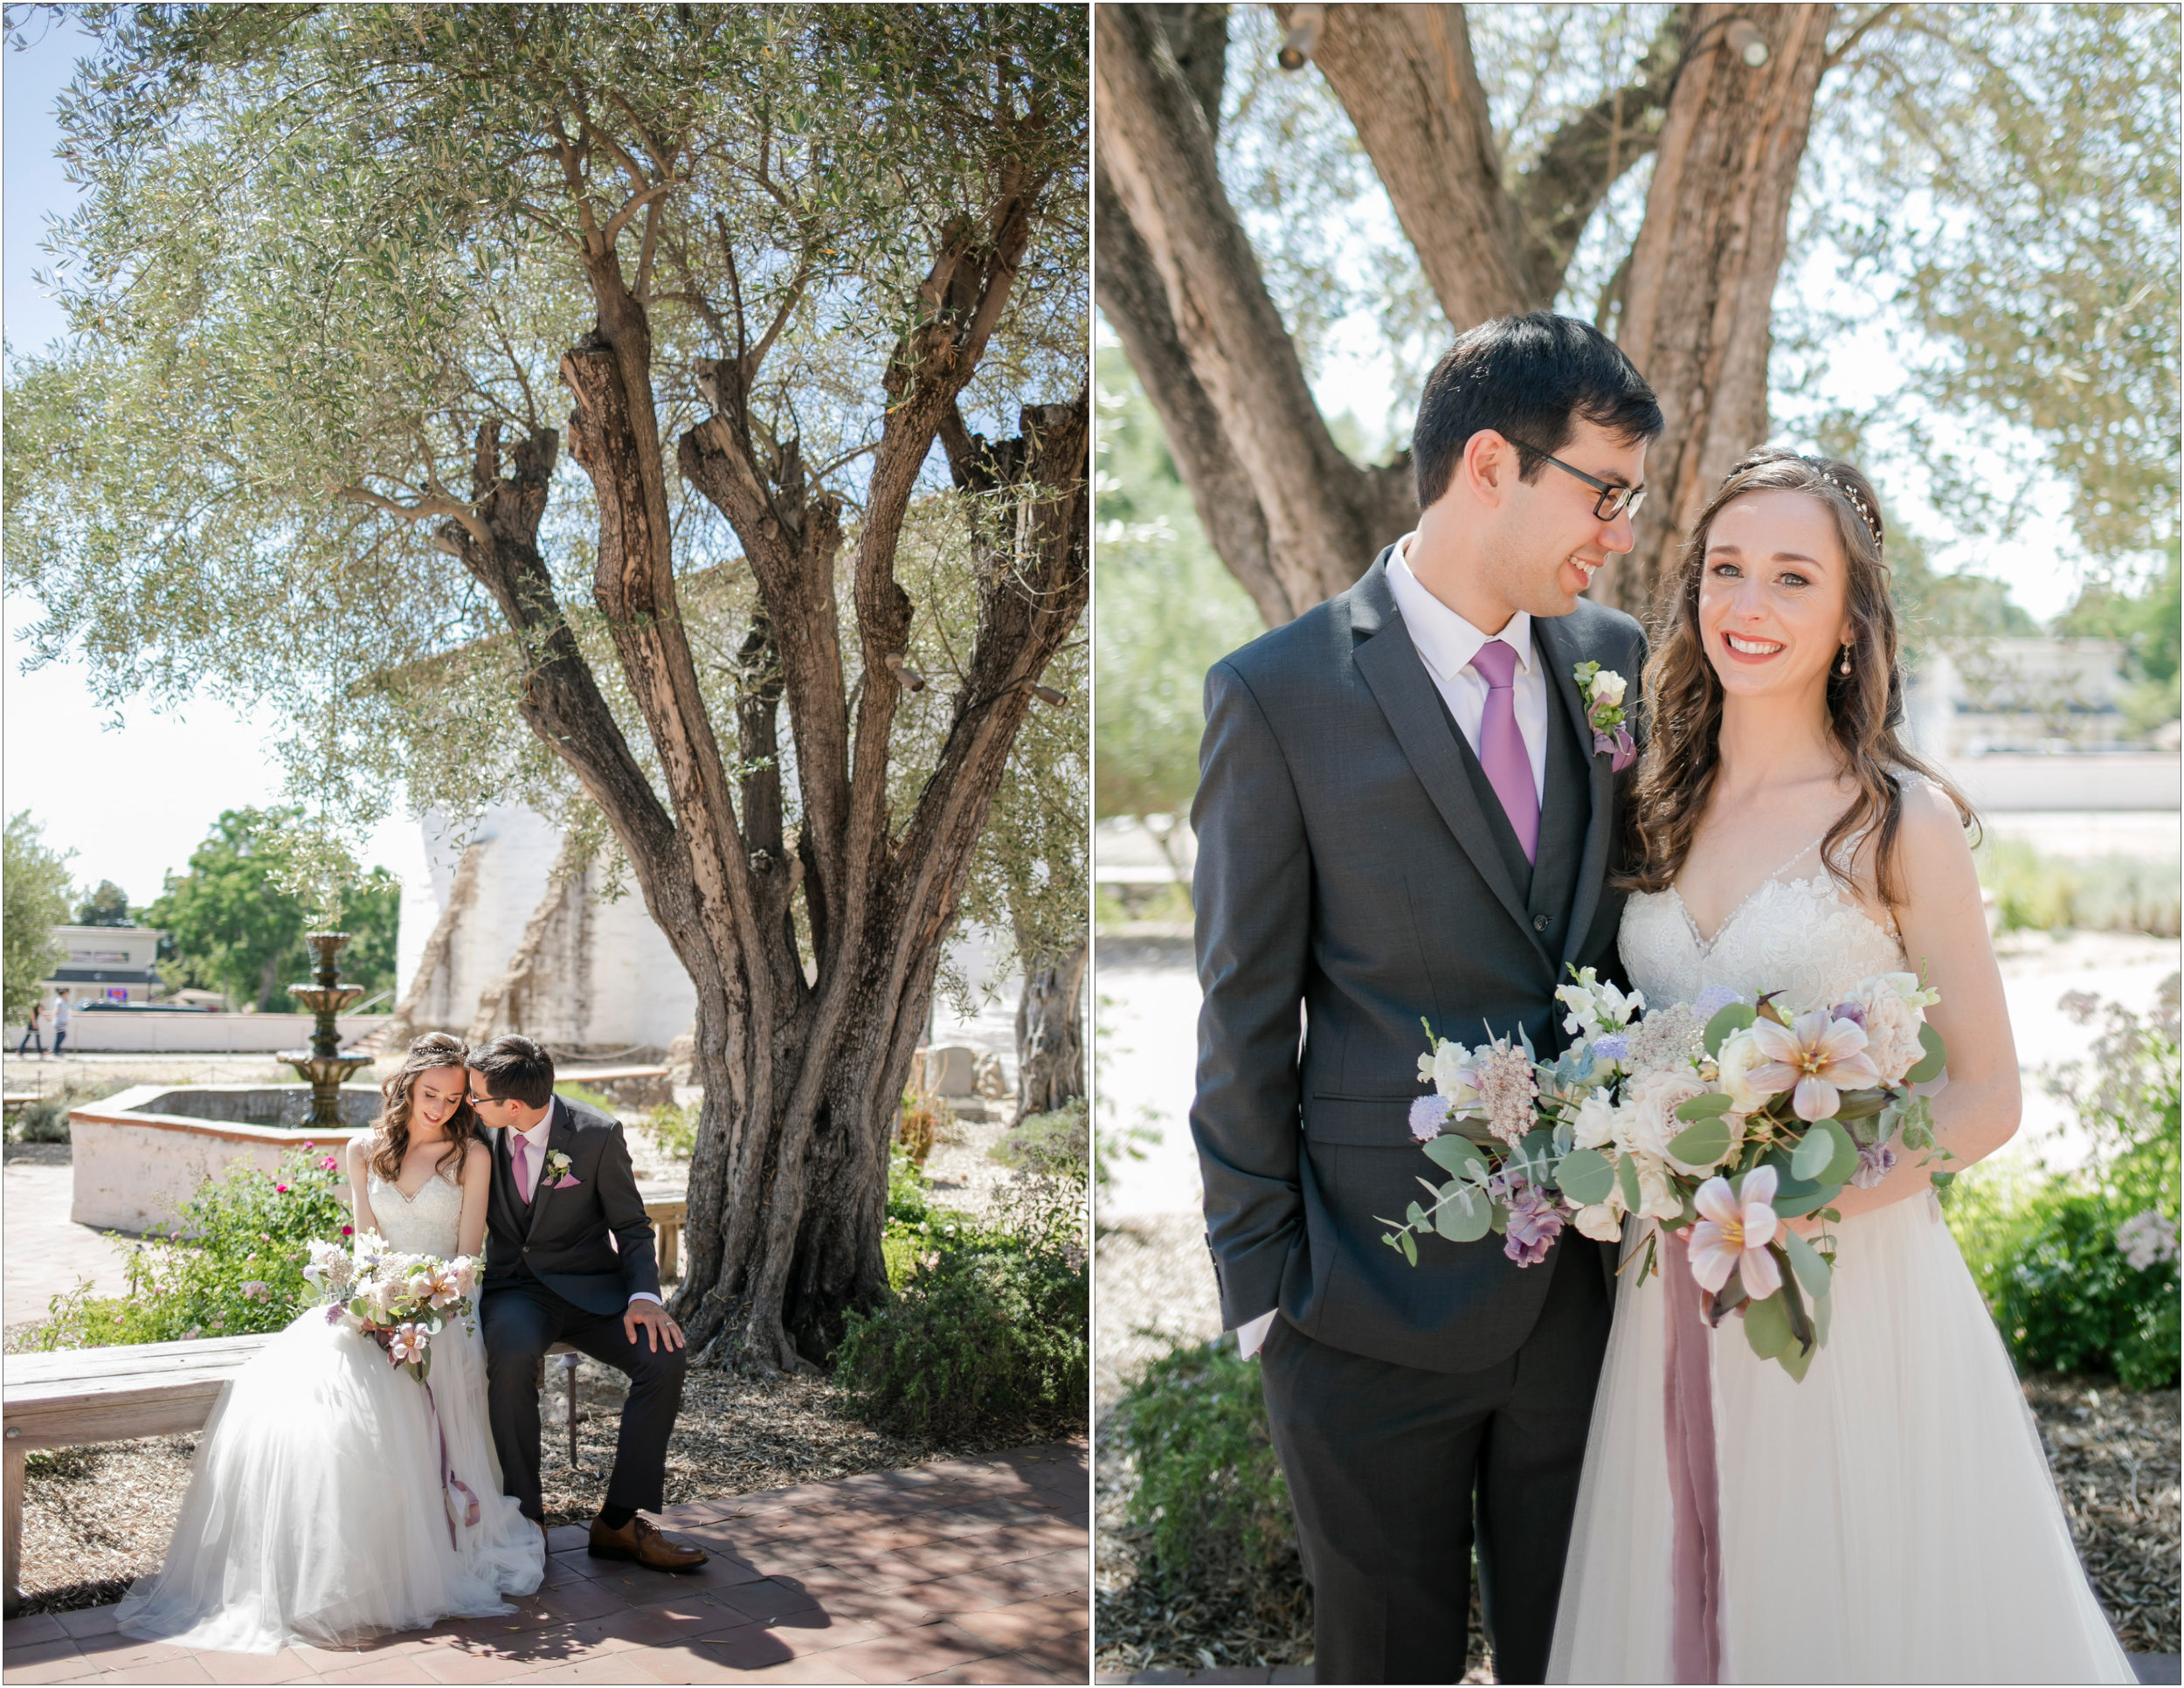 Old Mission San Jose Wedding - Michelle Chang Photography